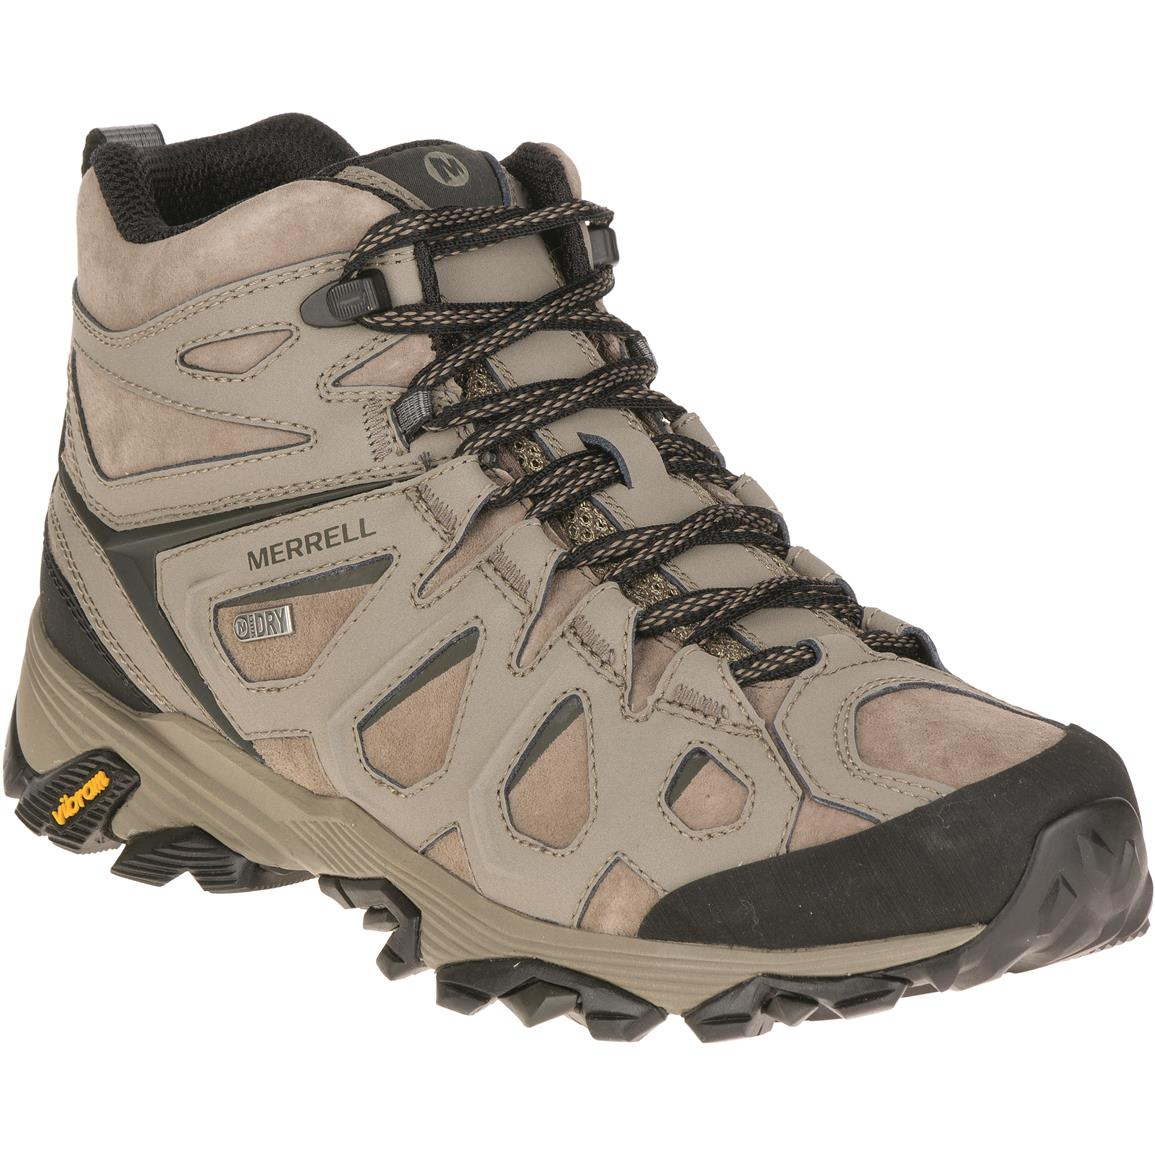 Merrell Men's Moab FST Leather Mid Waterproof Hiking Boots, Boulder